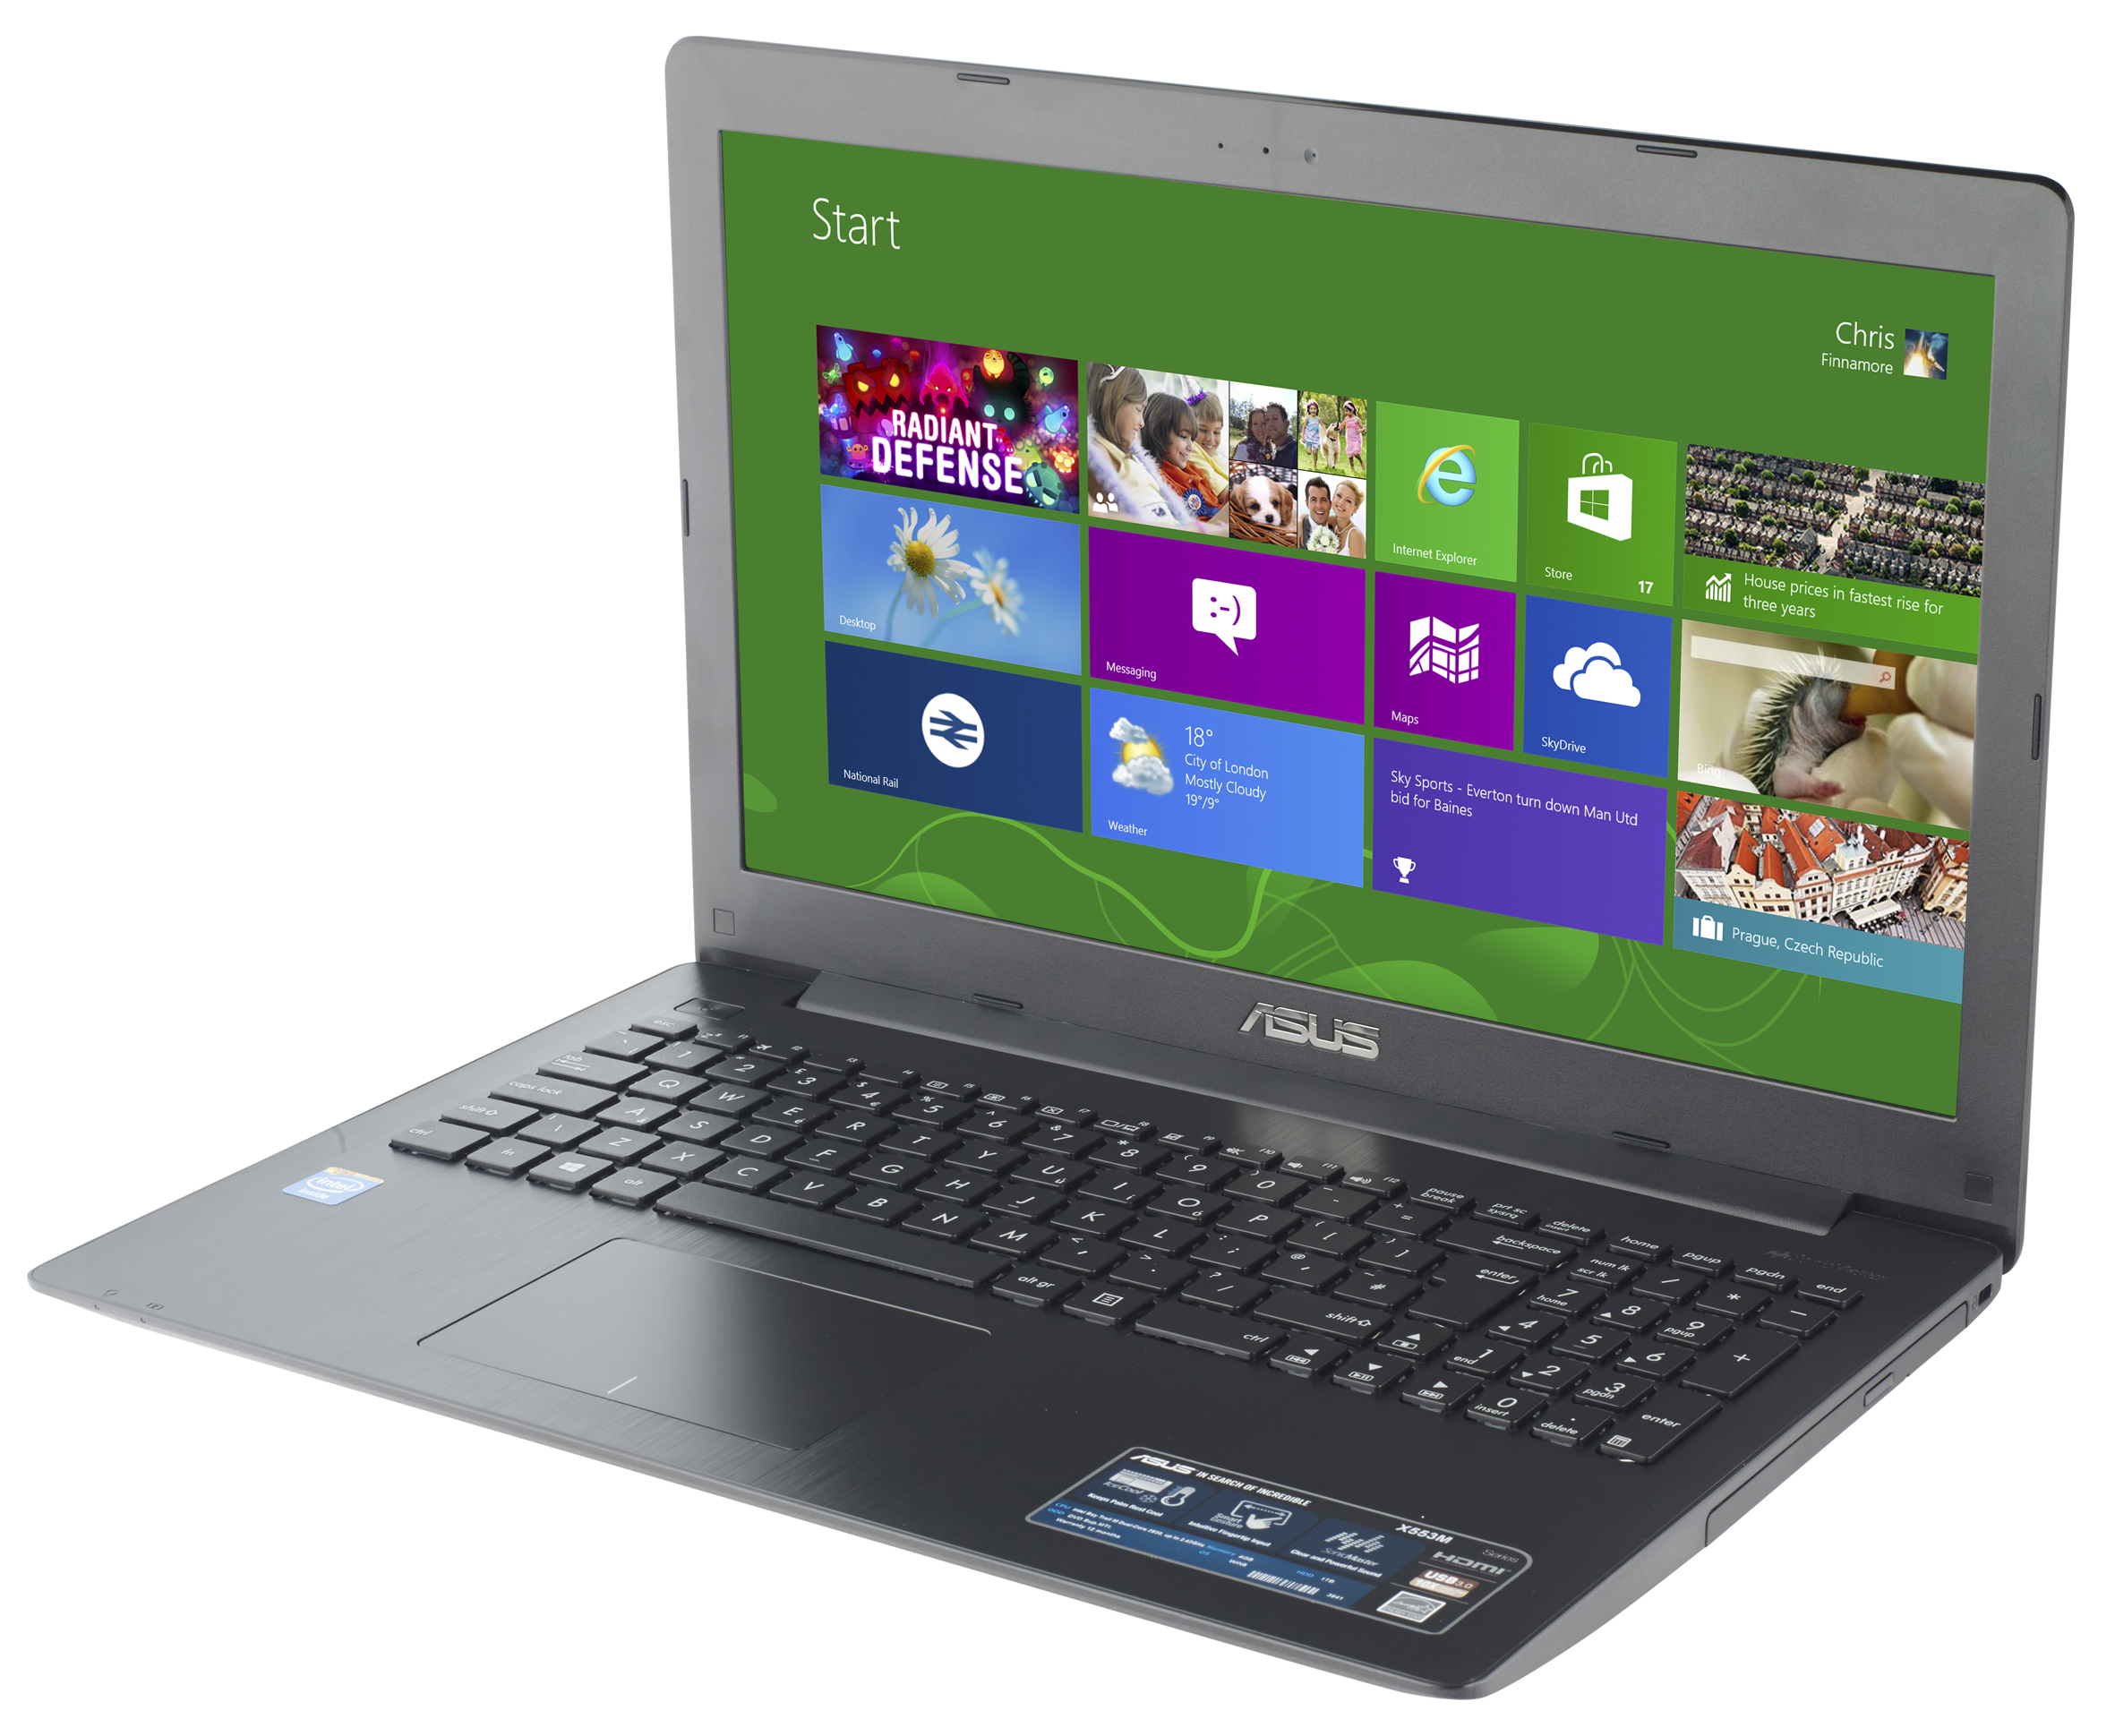 Asus X553ma Review Expert Reviews